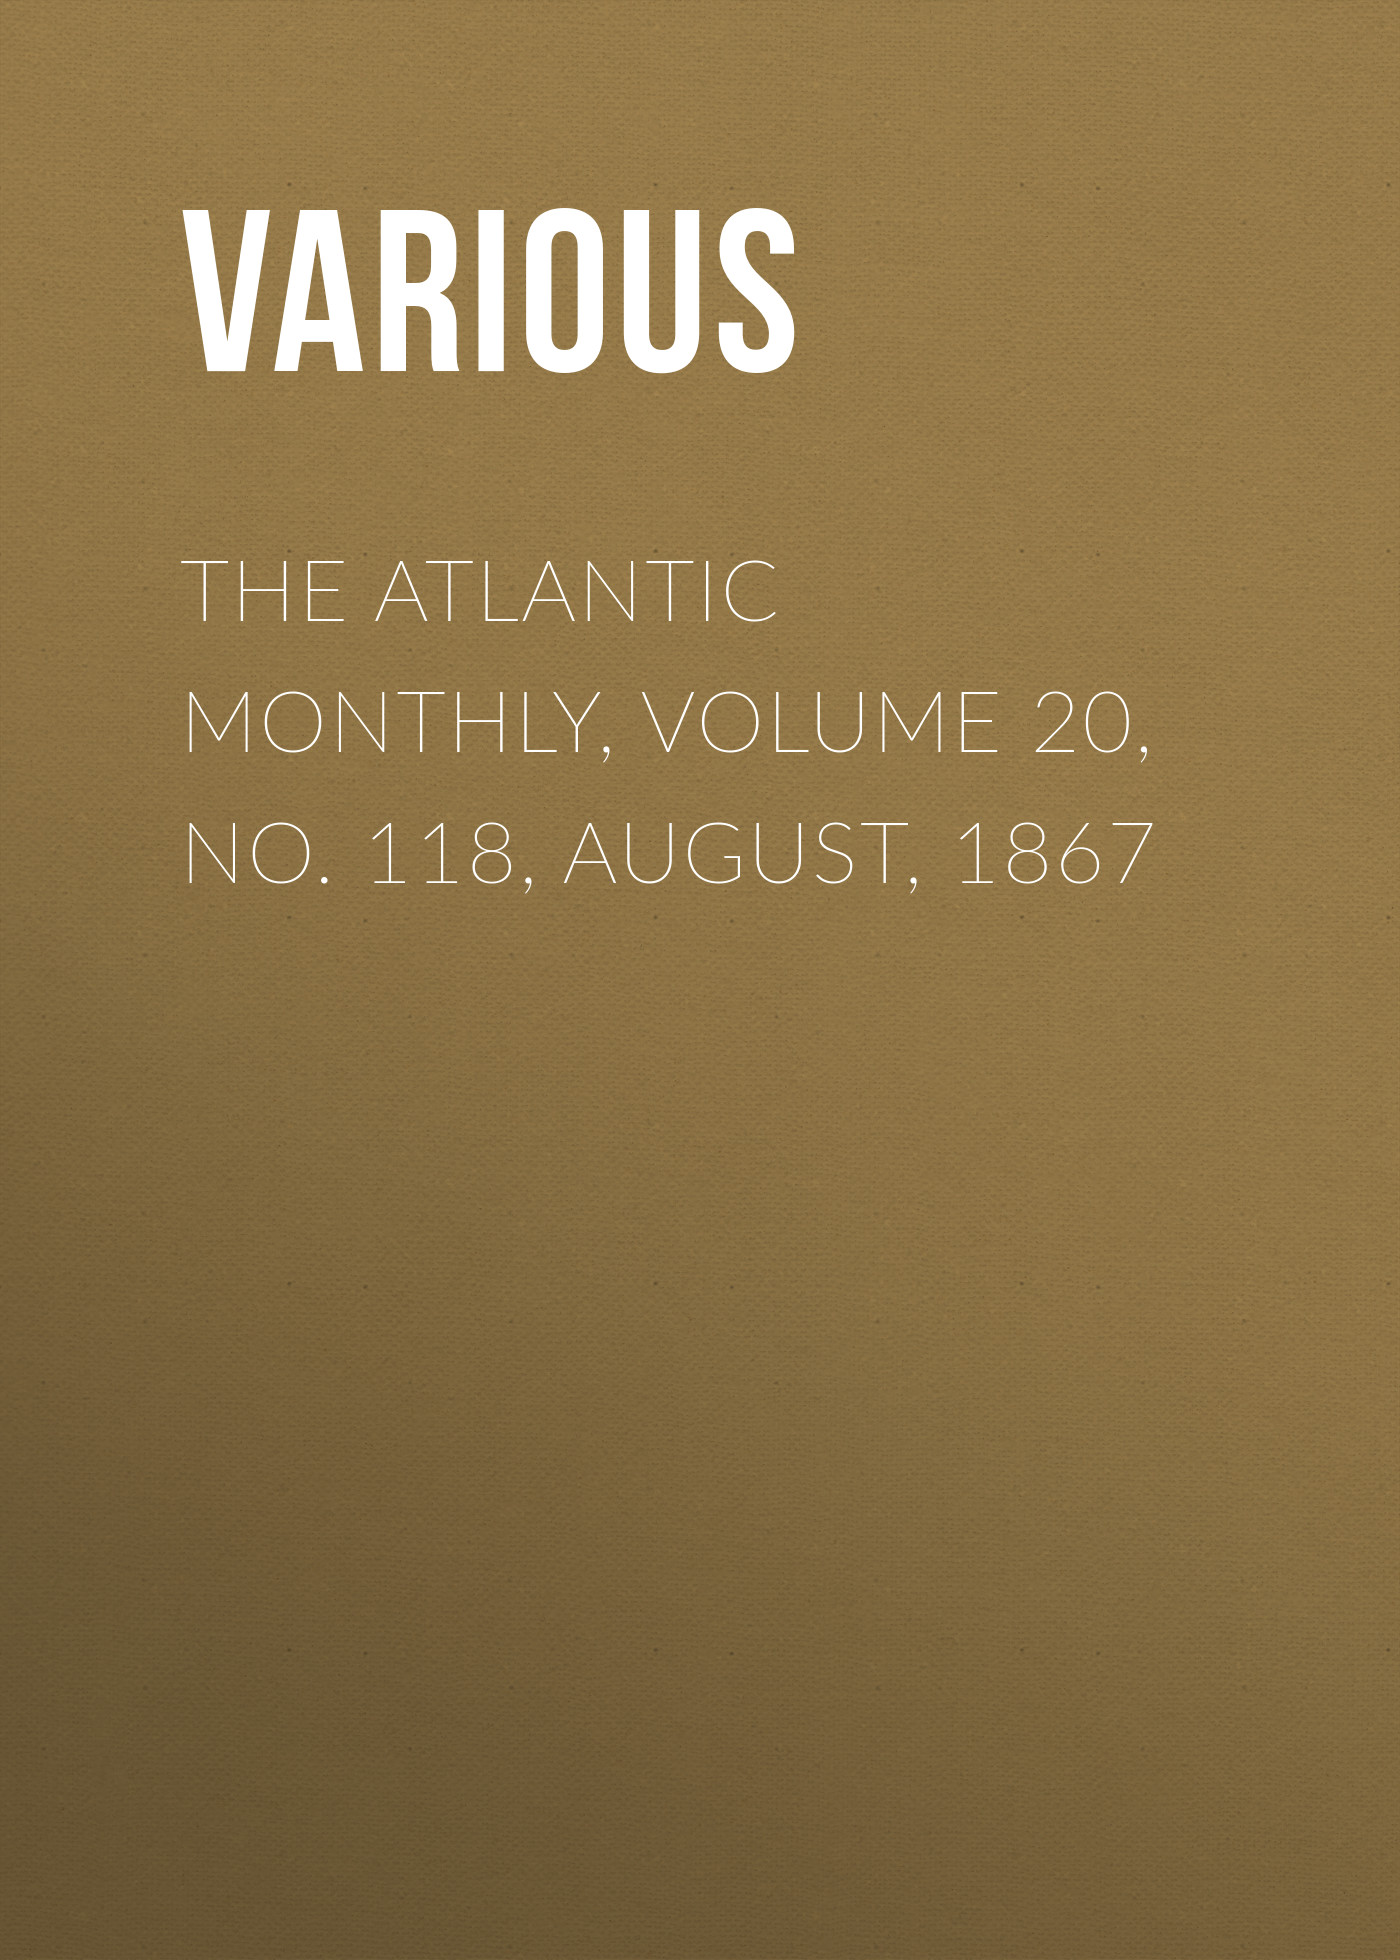 Various The Atlantic Monthly, Volume 20, No. 118, August, 1867 various the atlantic monthly volume 02 no 10 august 1858